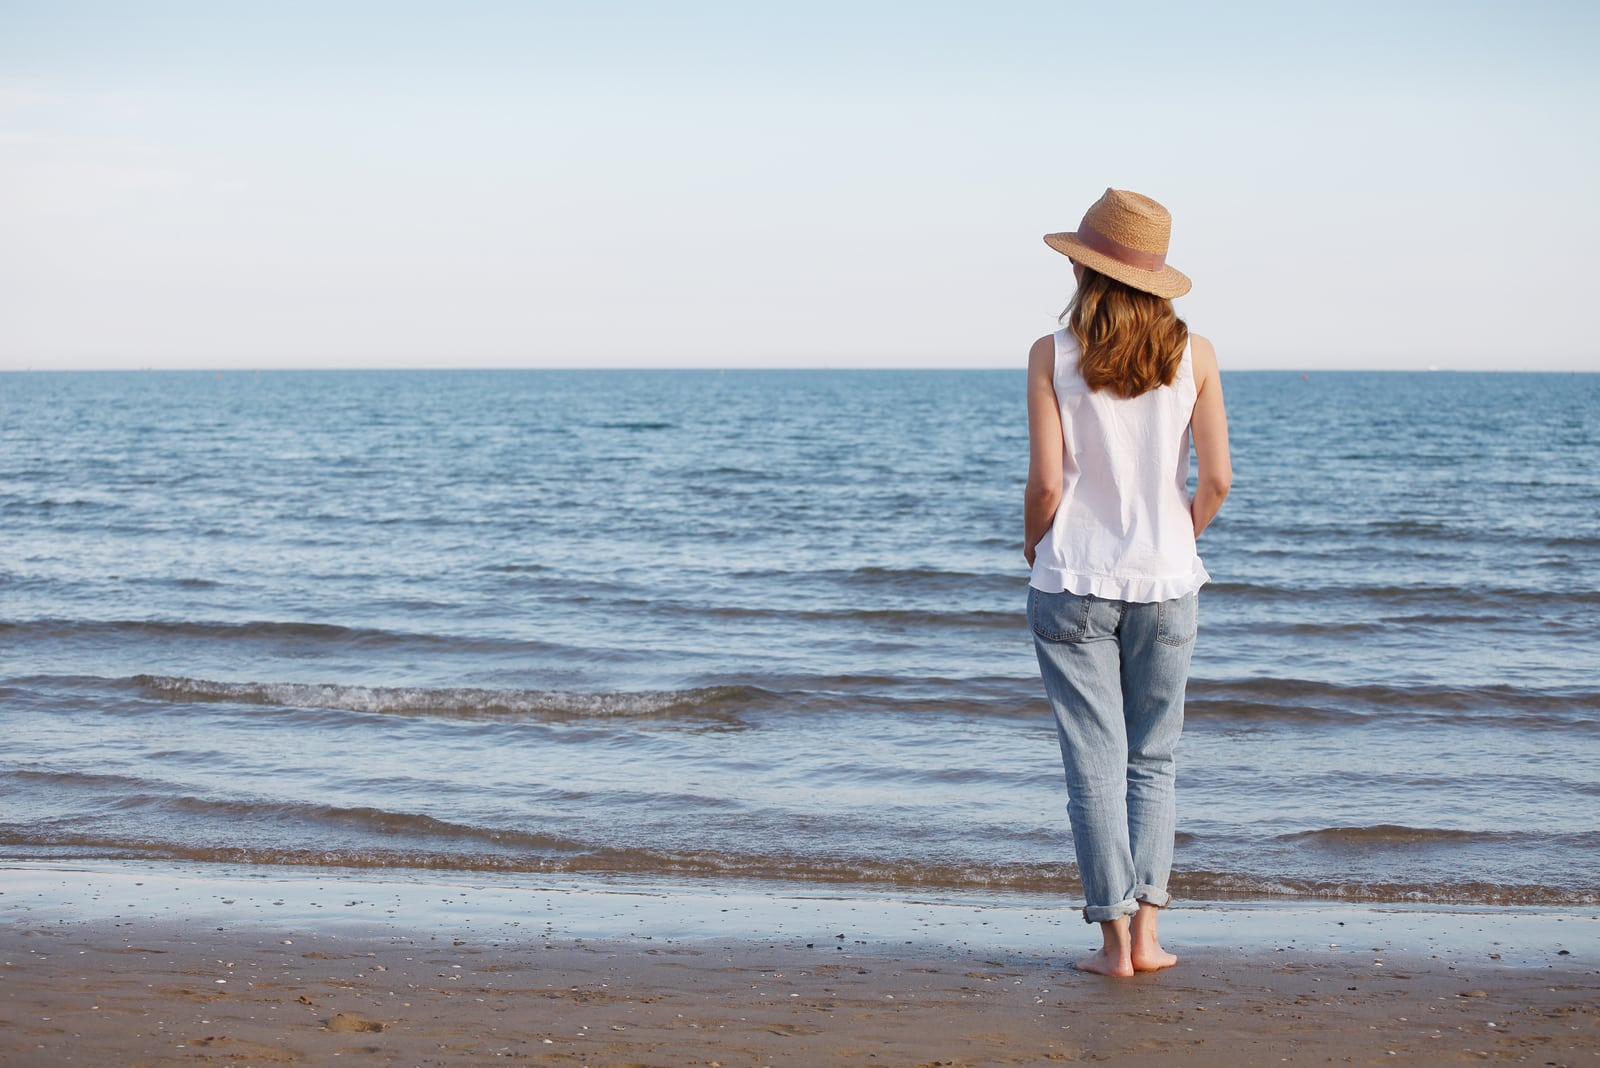 a barefoot woman with a hat standing on the beach by the sea